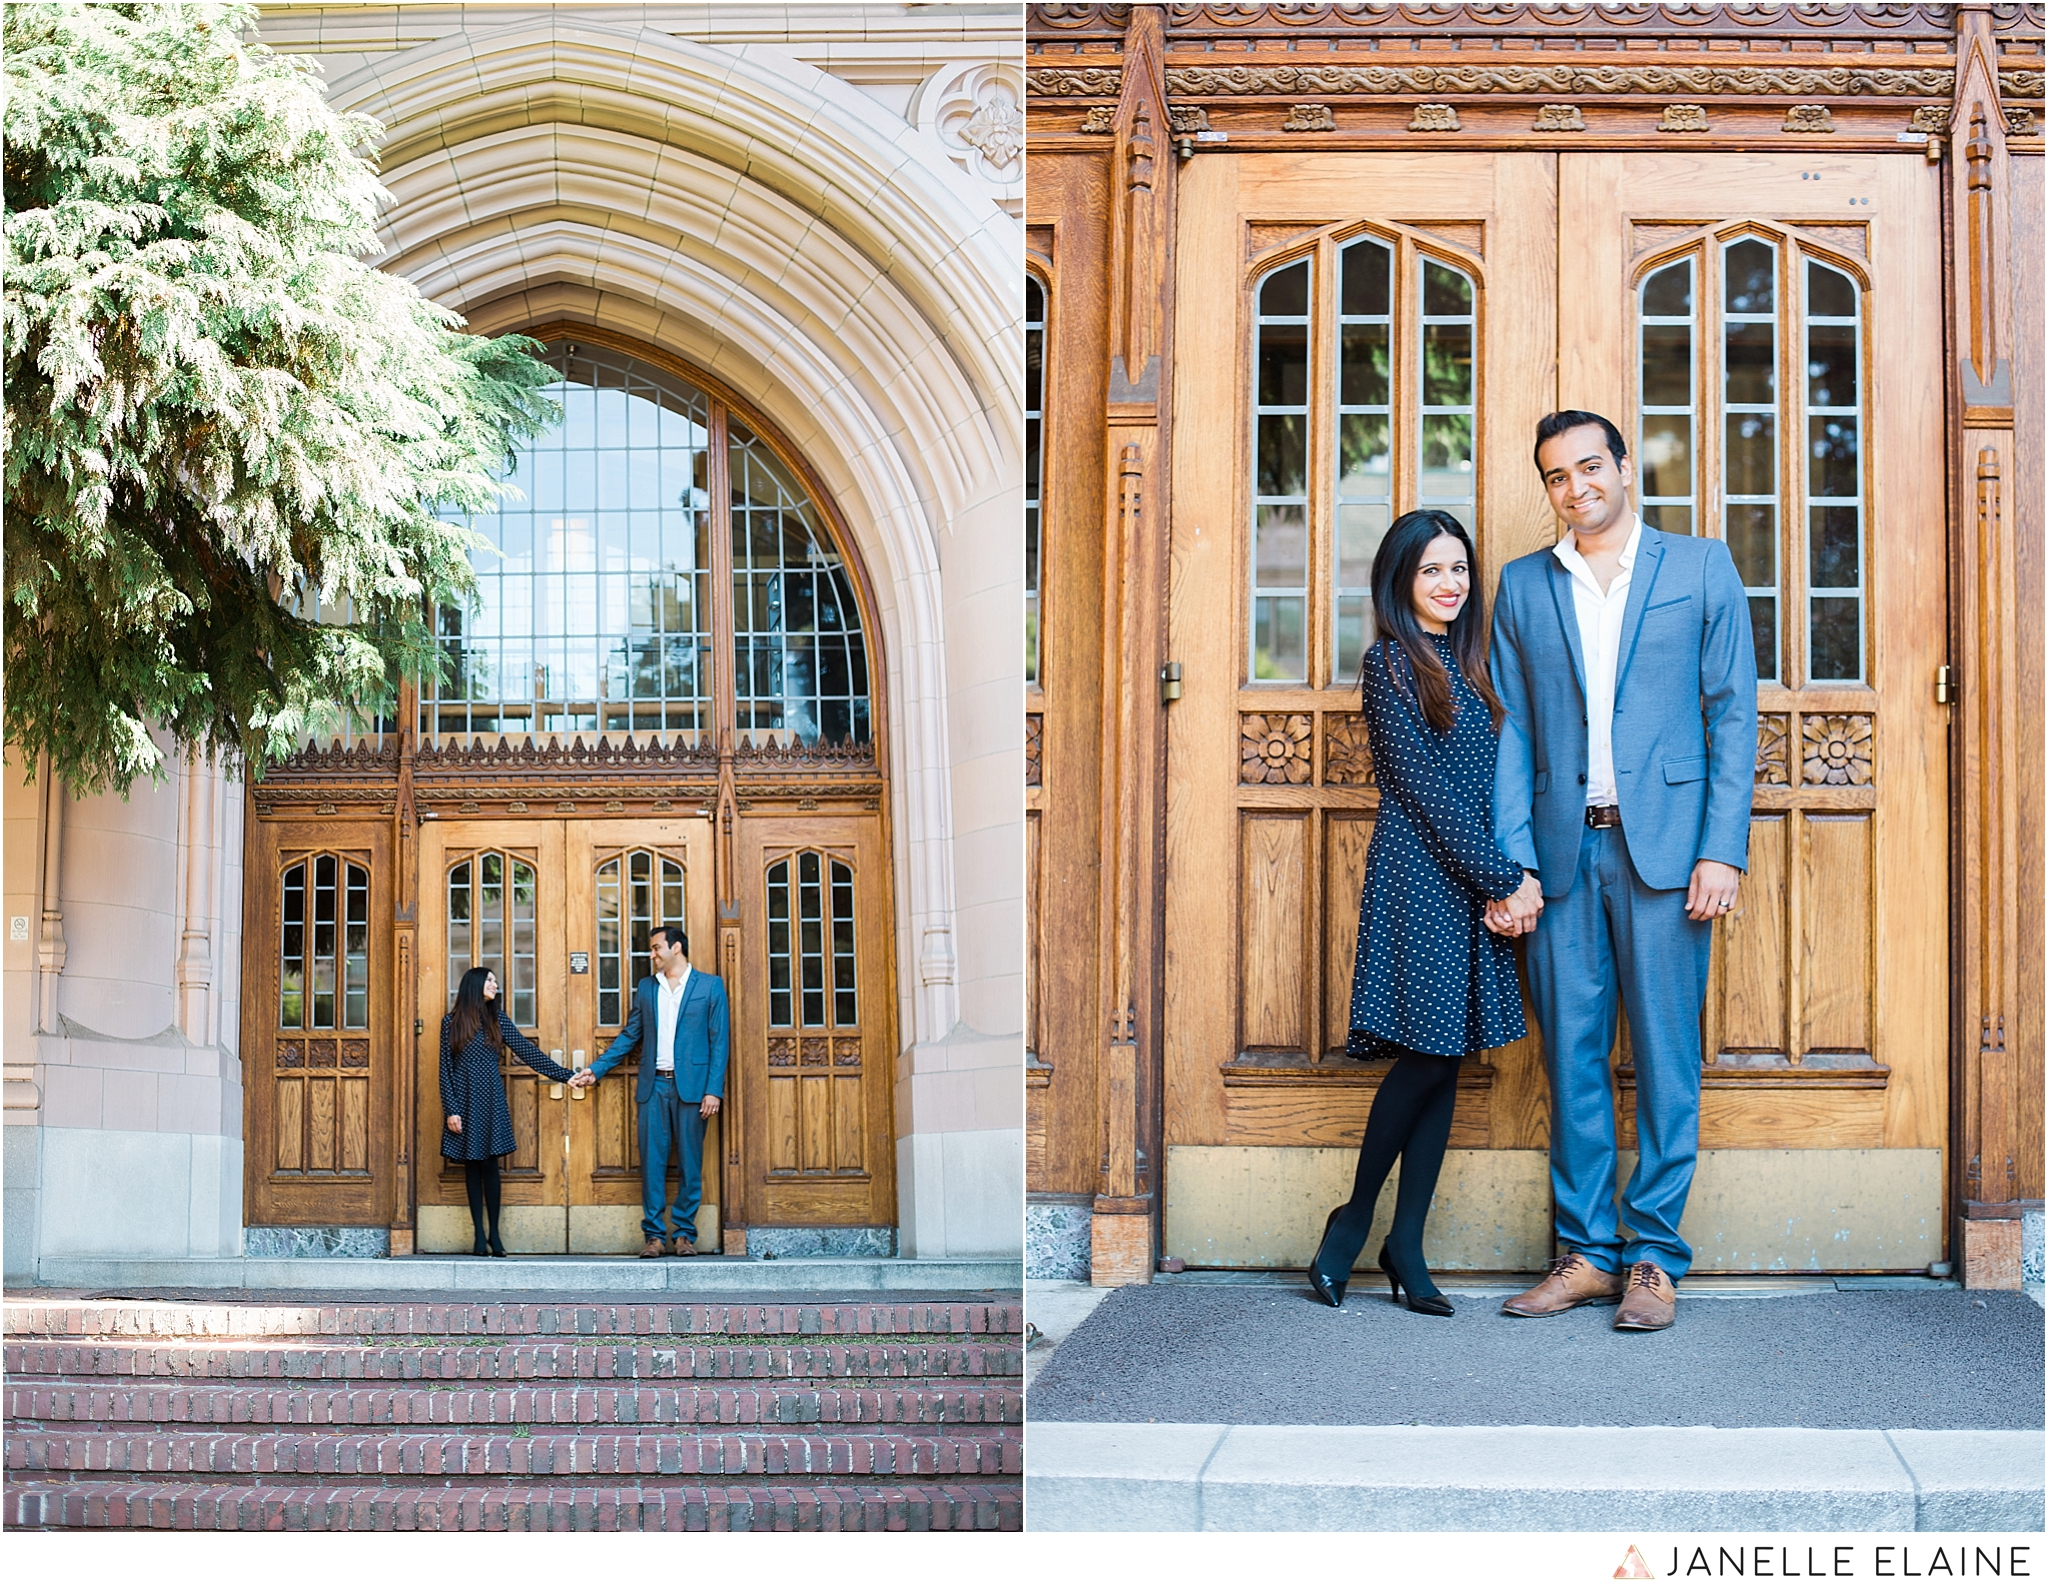 janelle elaine photography-zain and umema-seattle-uw-red square-engagement-photographer-32.jpg